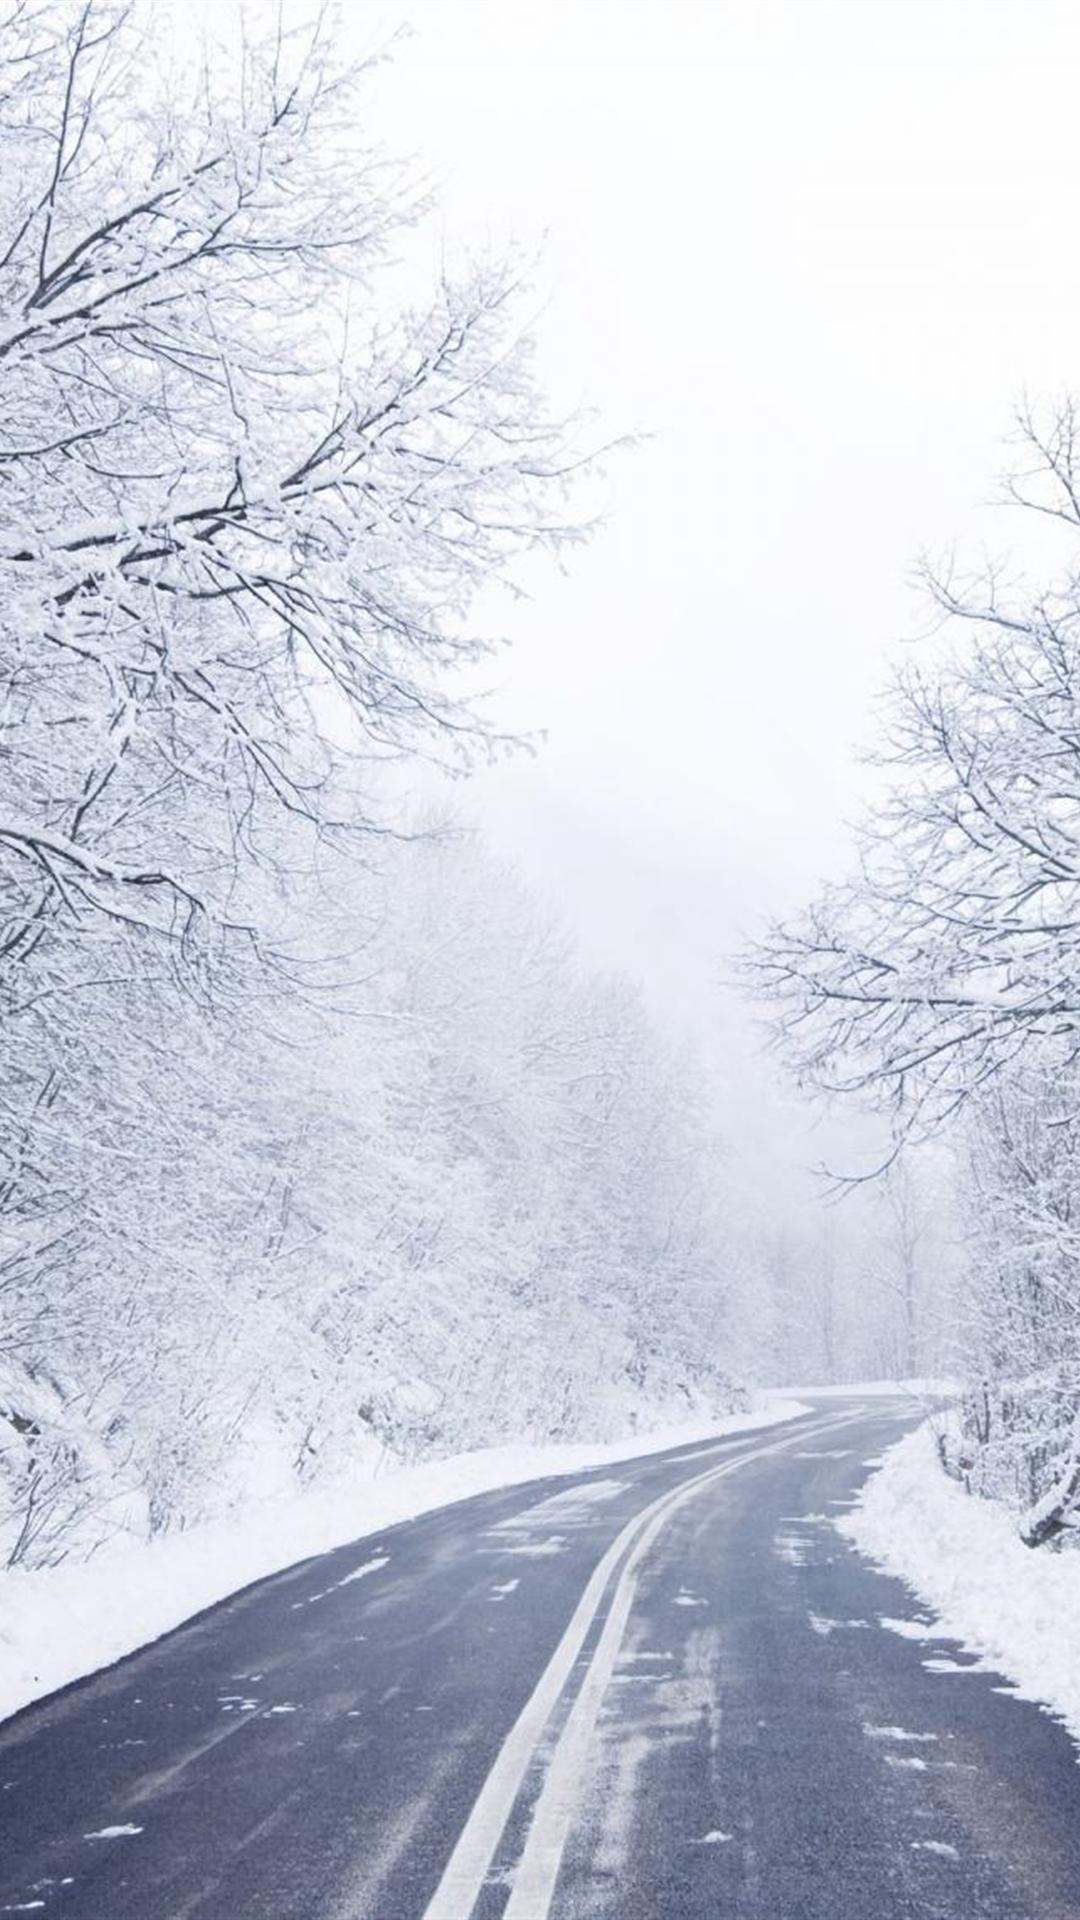 Wallpaper iphone winter - Download Cold Winter Road Wallpapers For Iphone 6 Plus